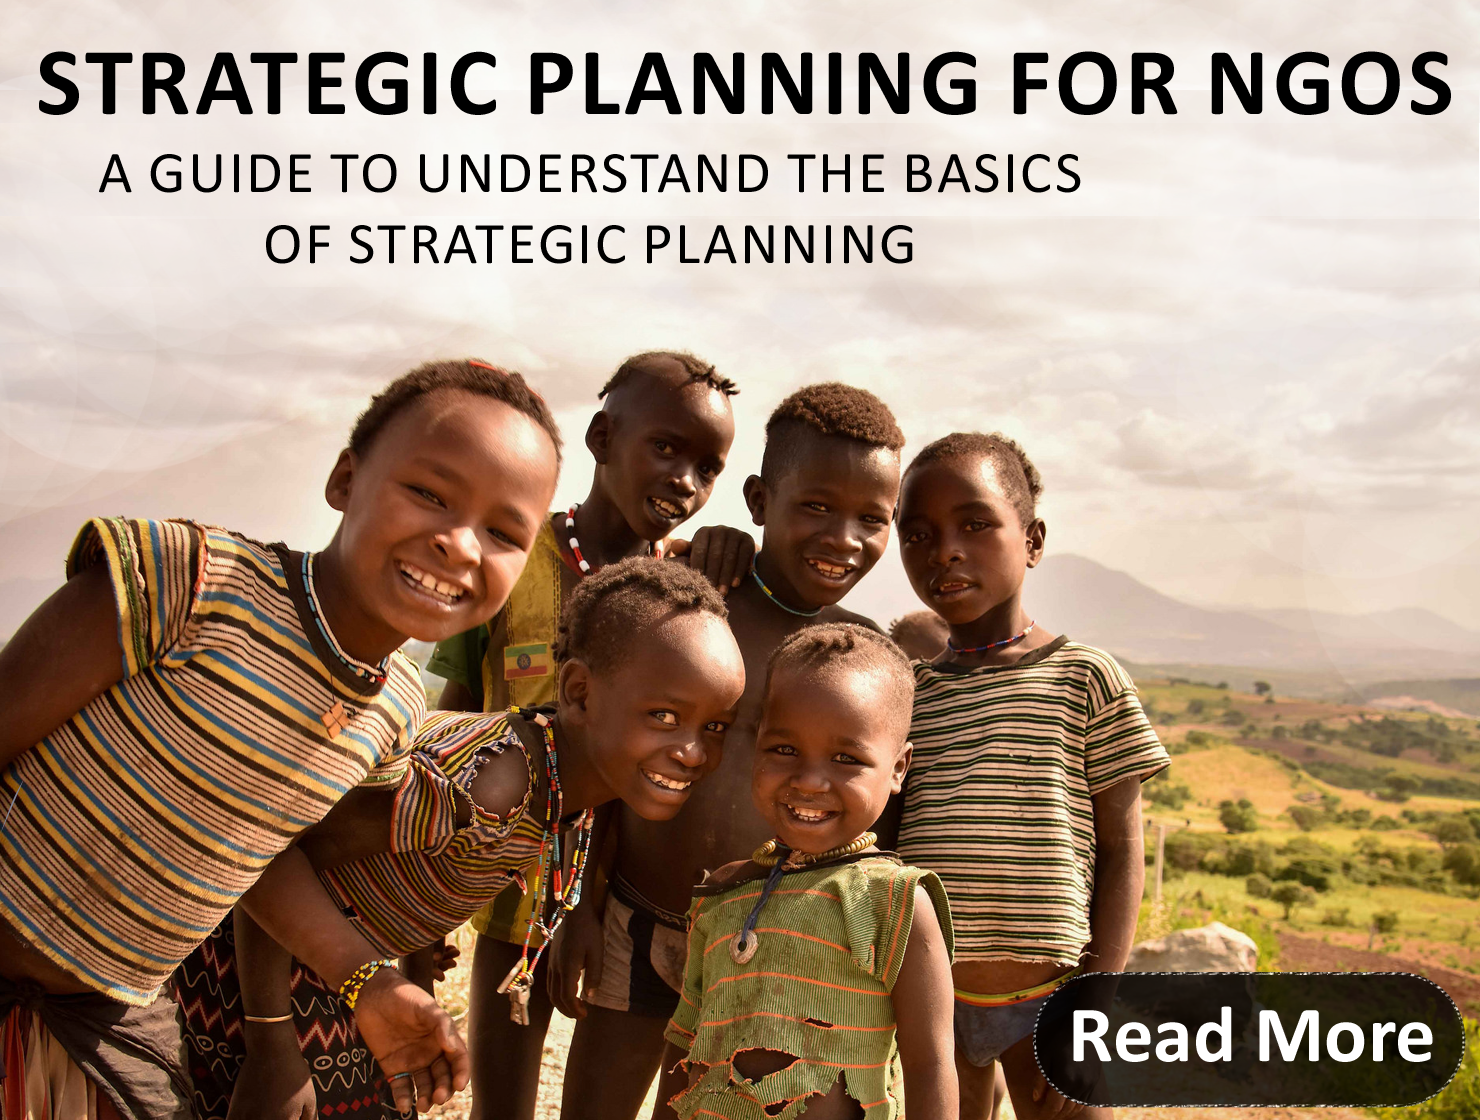 Strategic Planning for NGOs